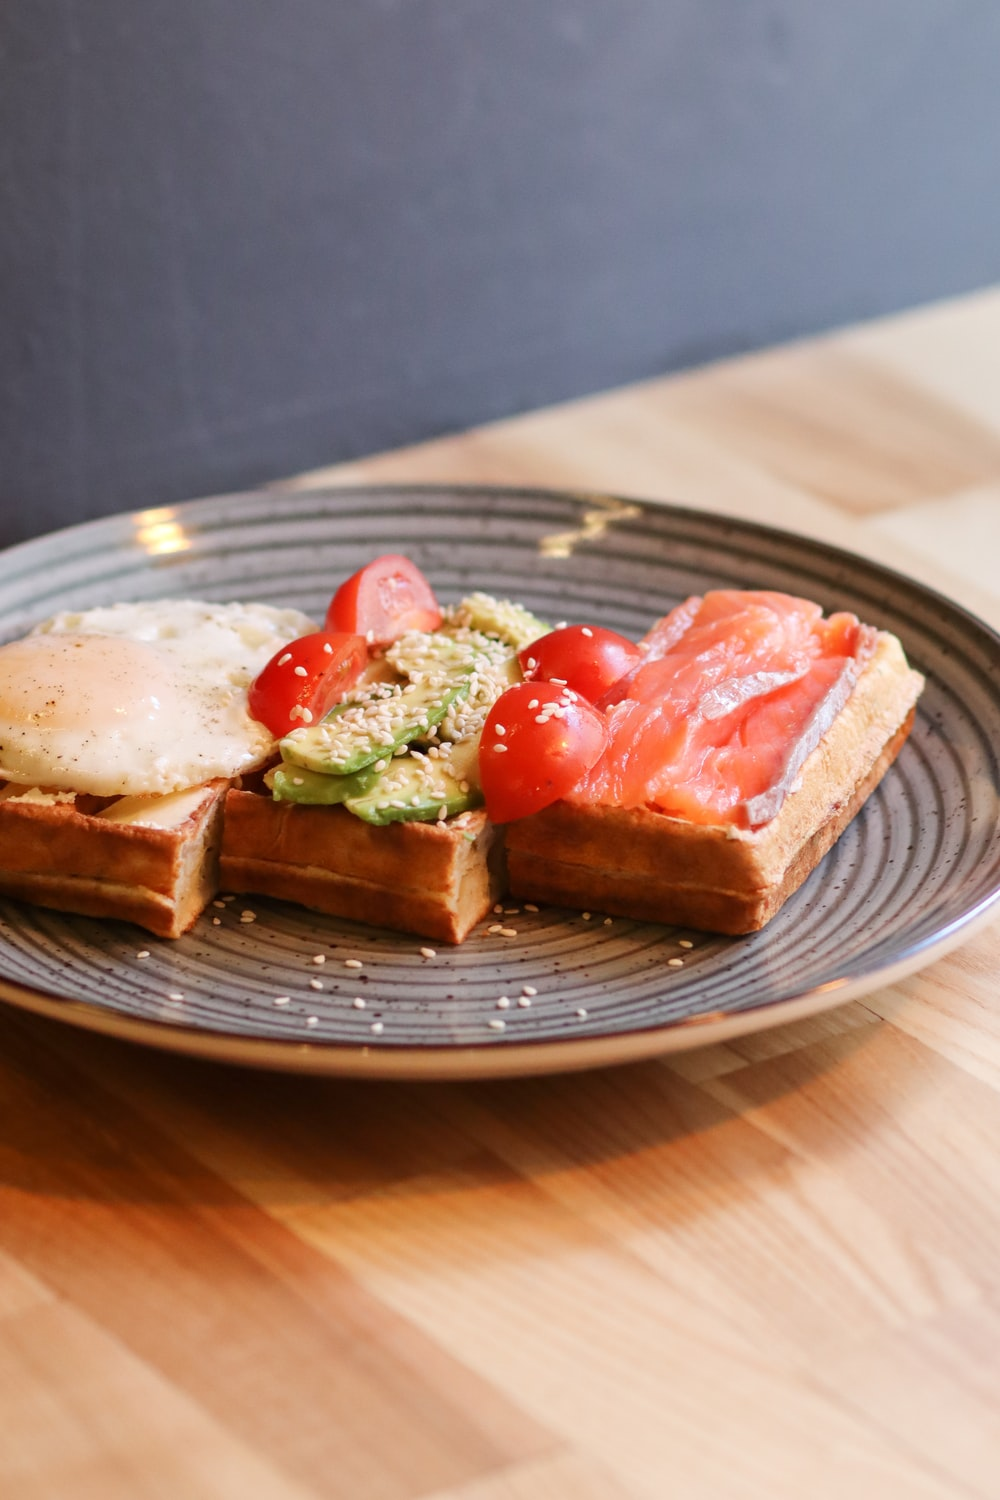 sliced bread with tomato and green vegetable on brown wooden round plate